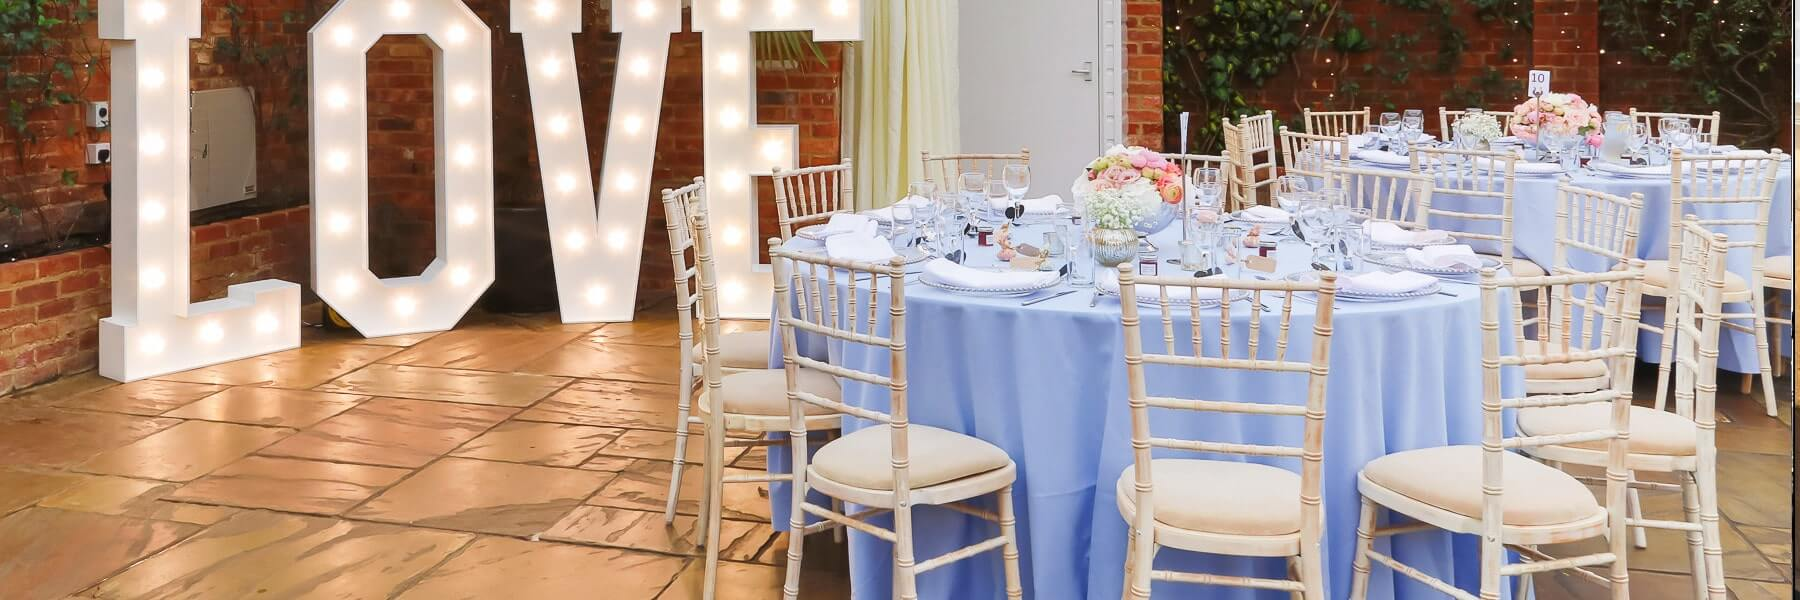 hire chiavari chairs for weddings